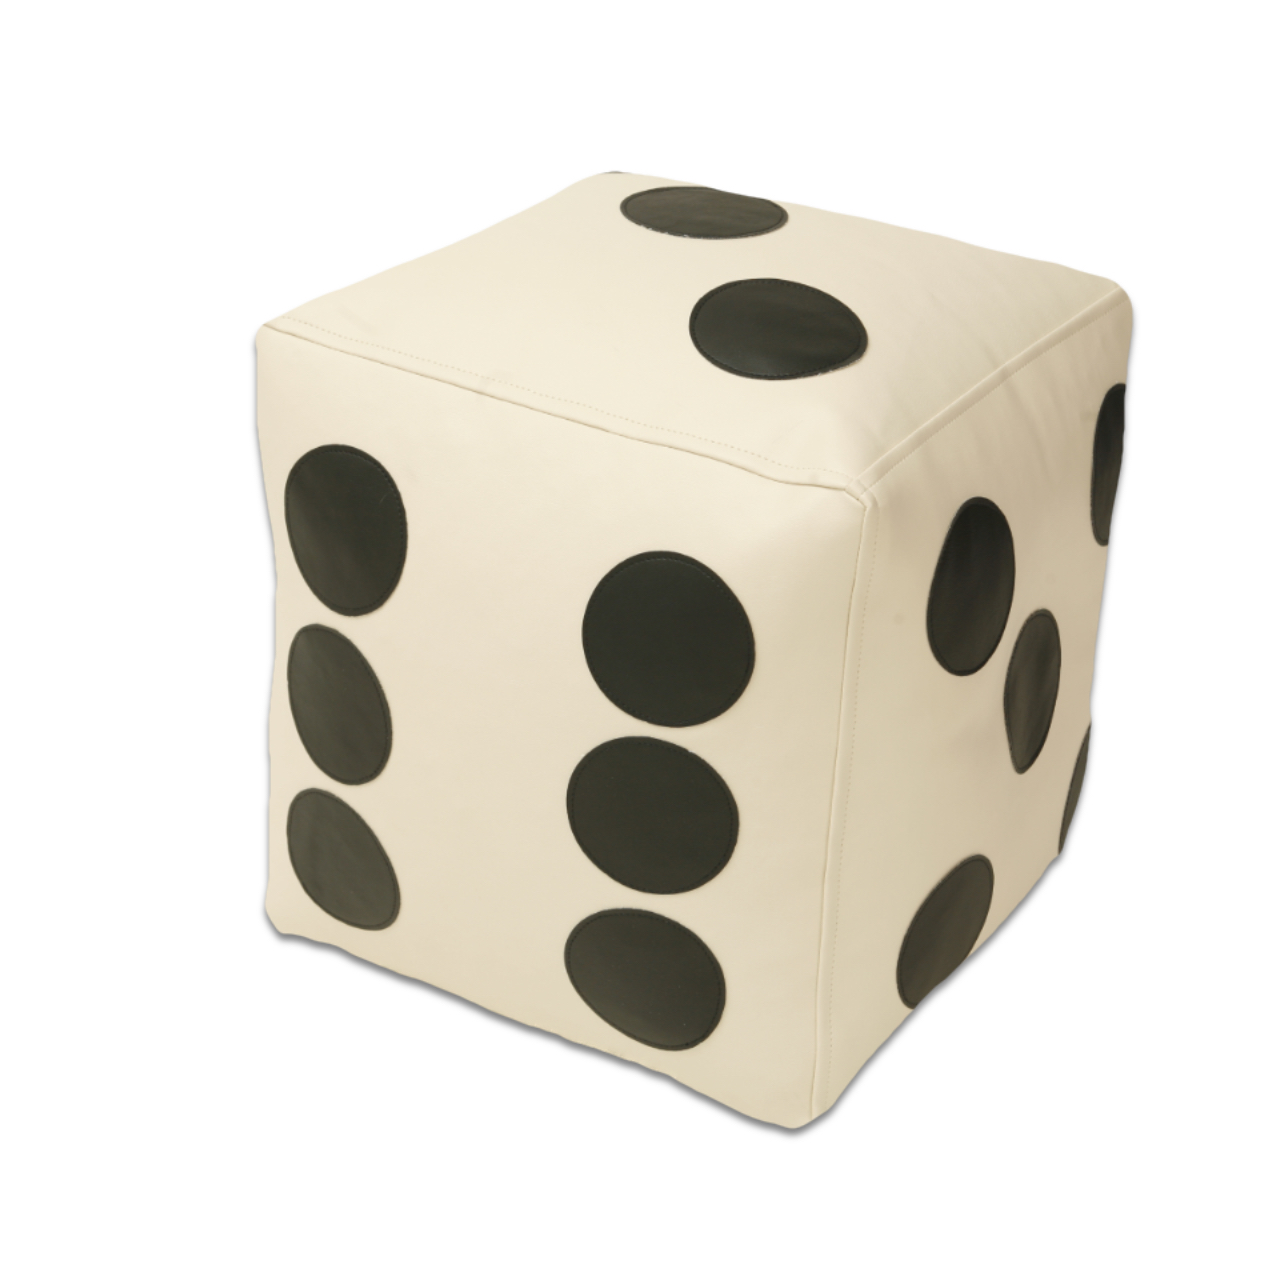 Dice Poof in white